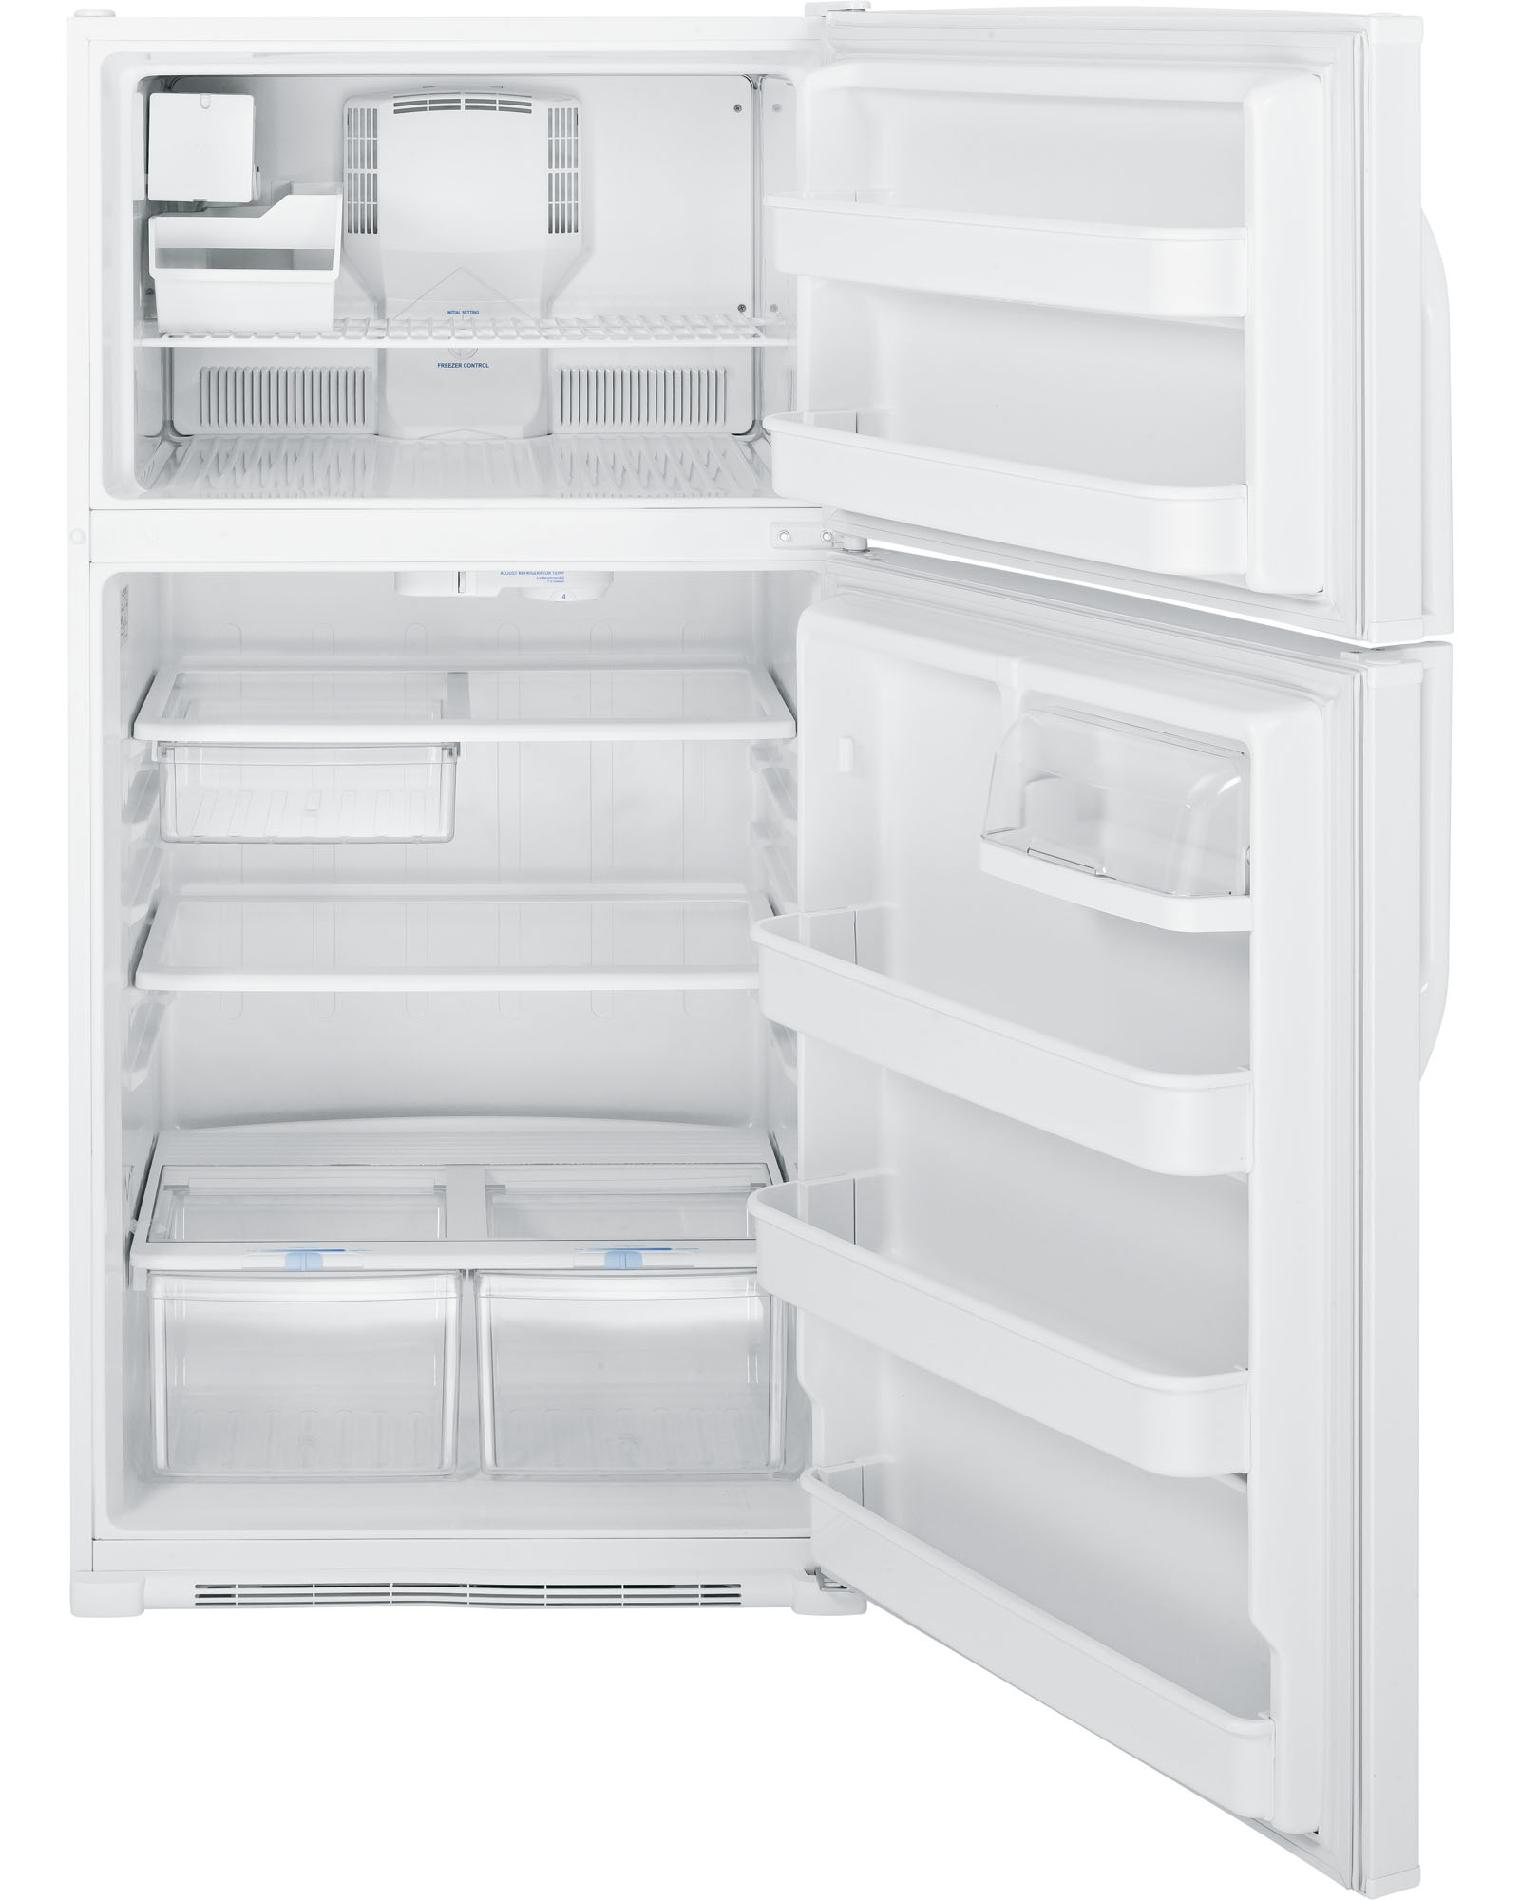 GE 21.0 cu. ft. Top-Freezer Refrigerator - White